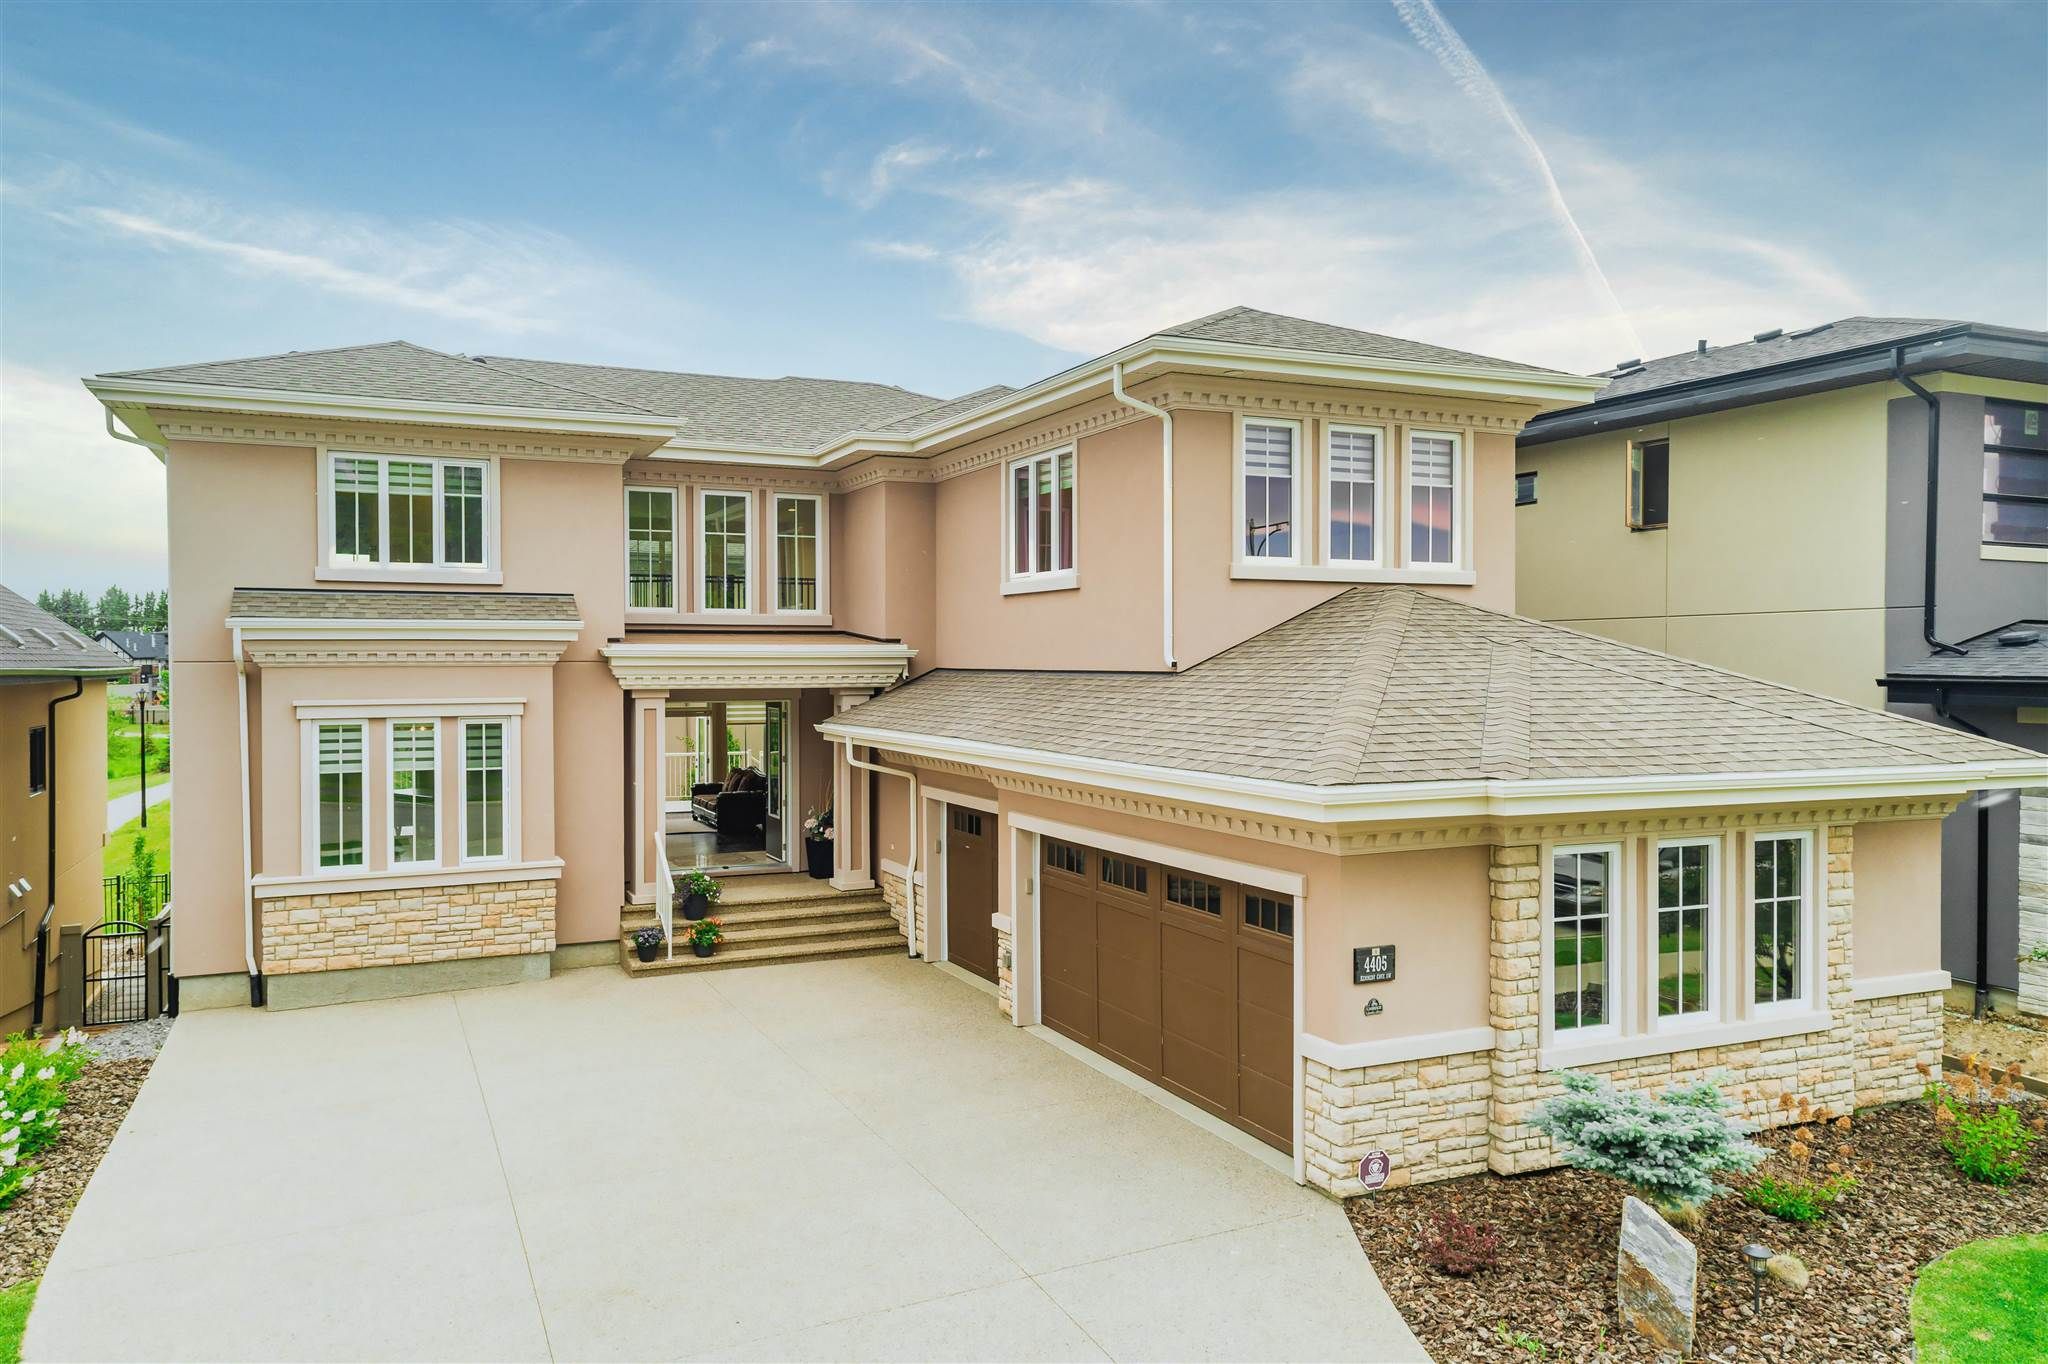 Main Photo: 4405 KENNEDY Cove in Edmonton: Zone 56 House for sale : MLS®# E4250252